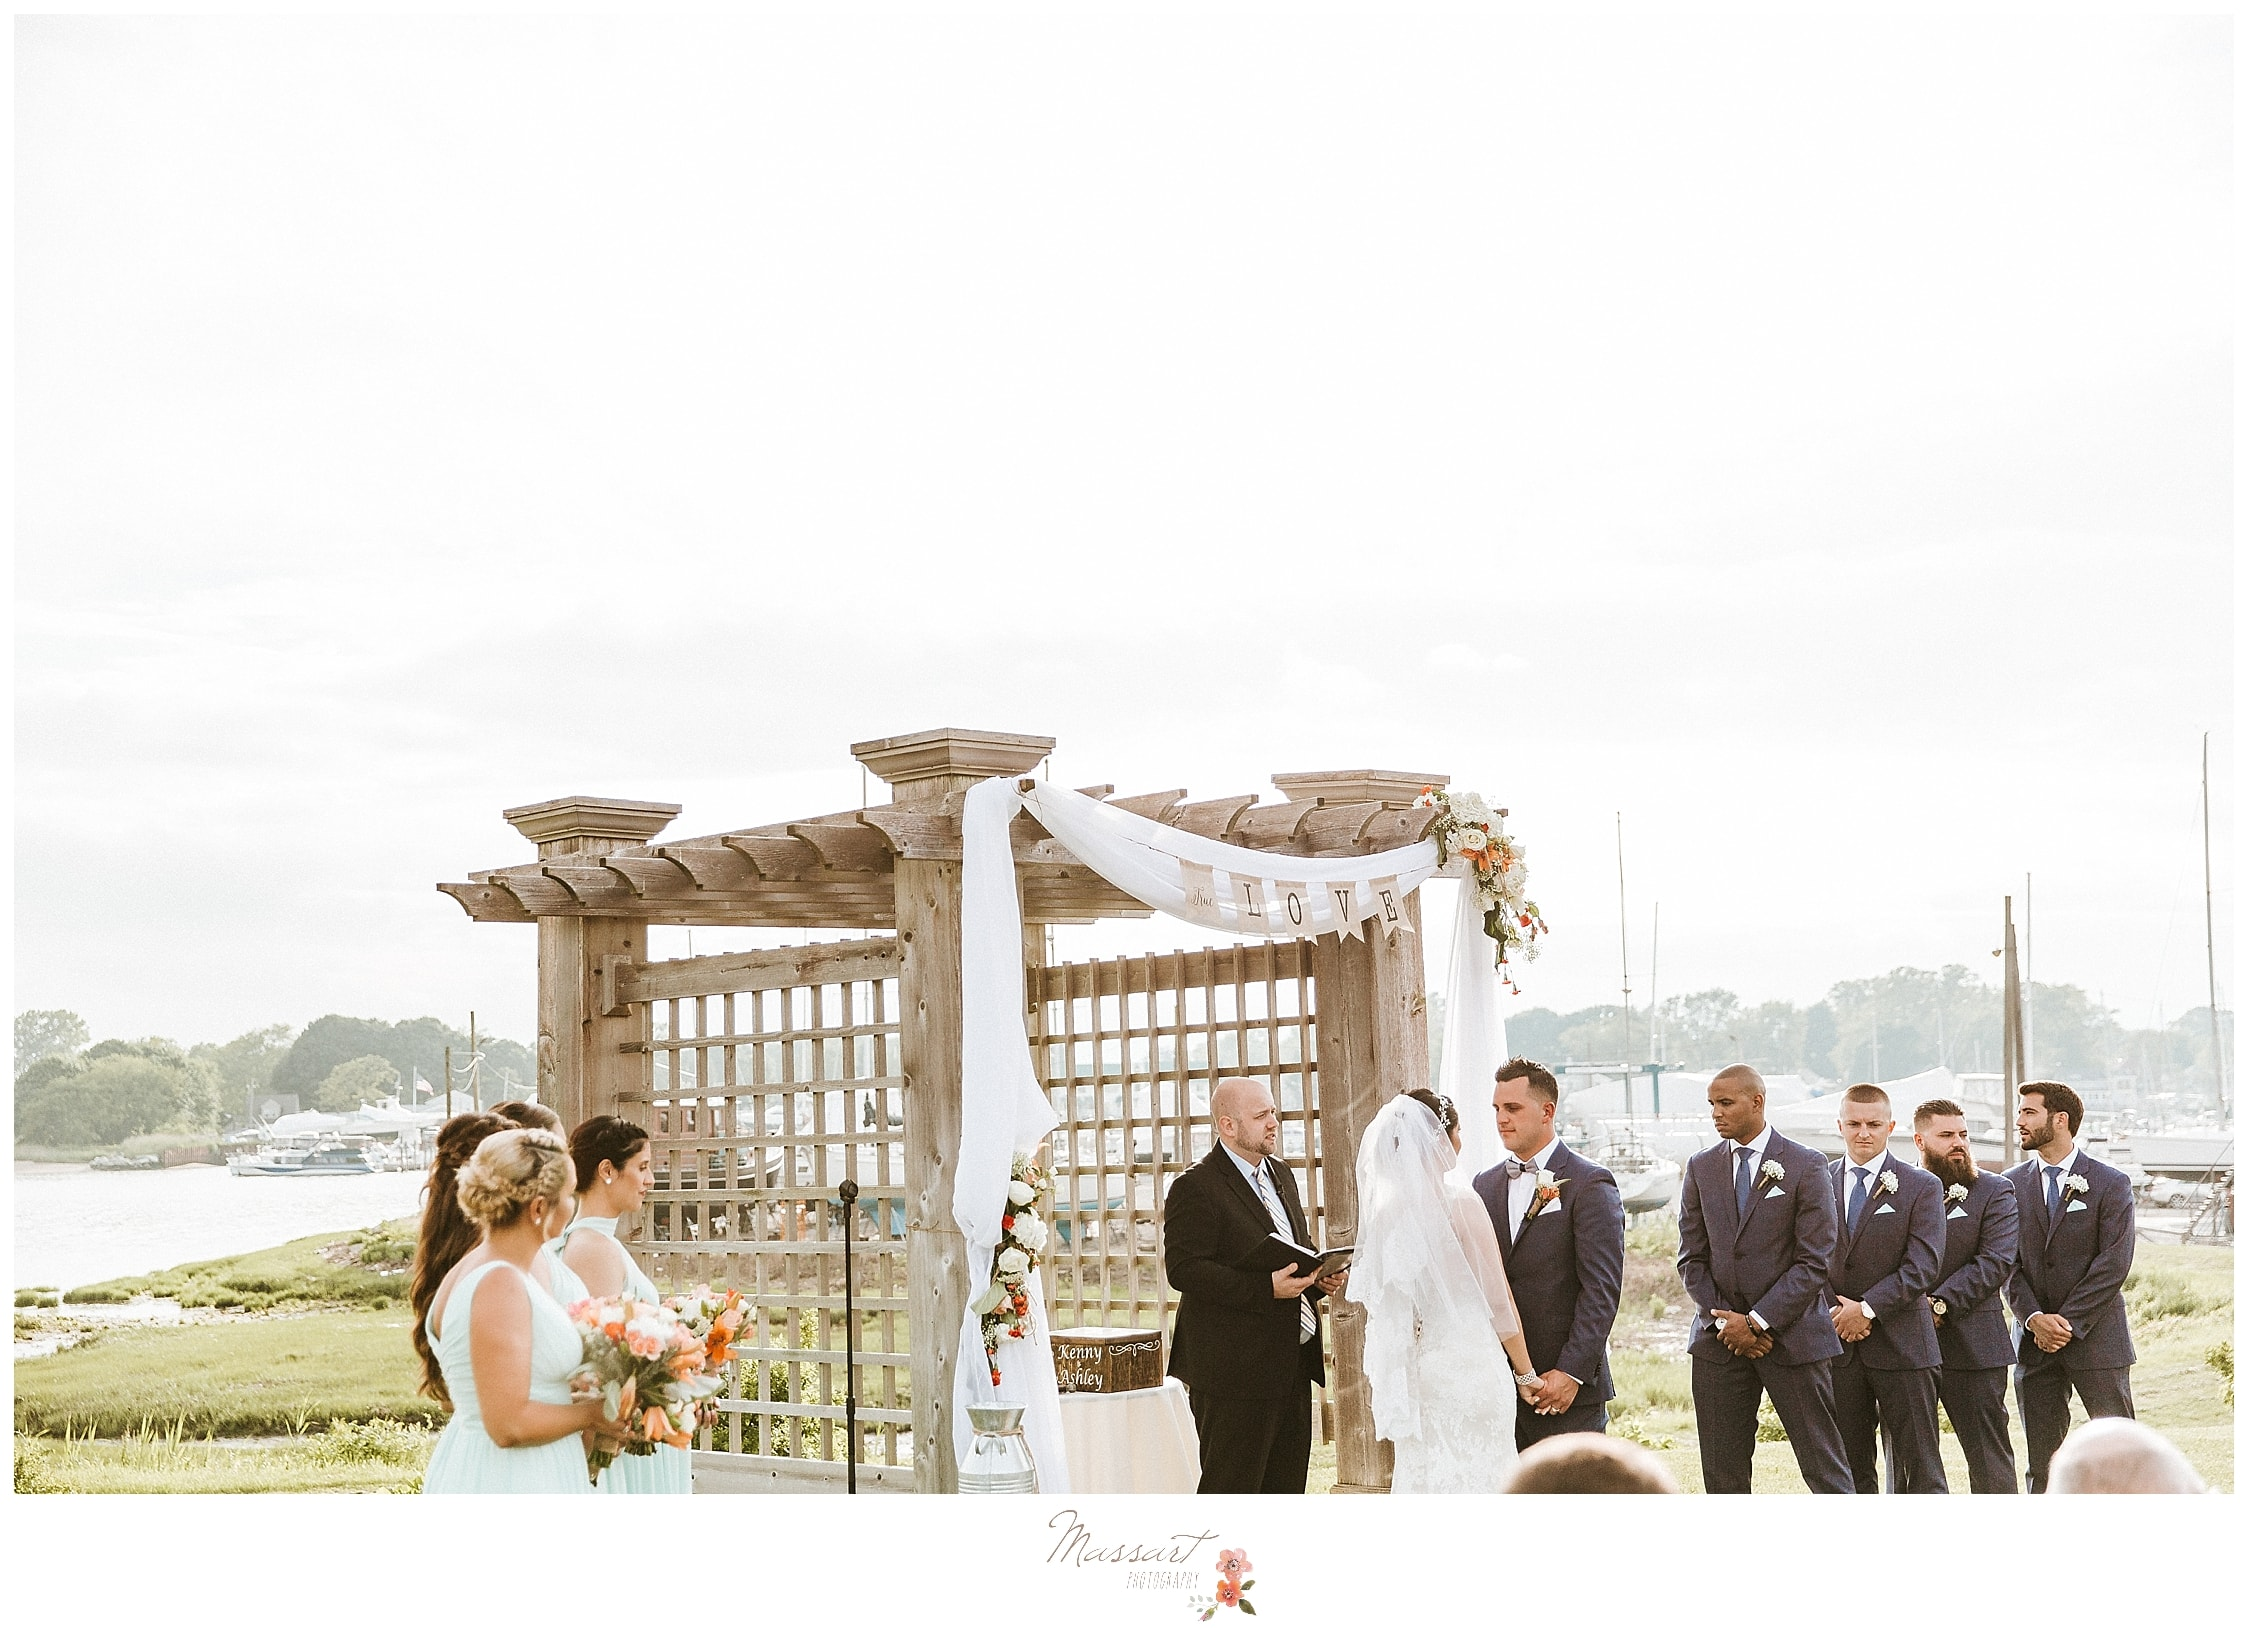 Outdoor ceremony with an arbor at Harbor Lights in RI photographed by wedding photographers Massart Photography.